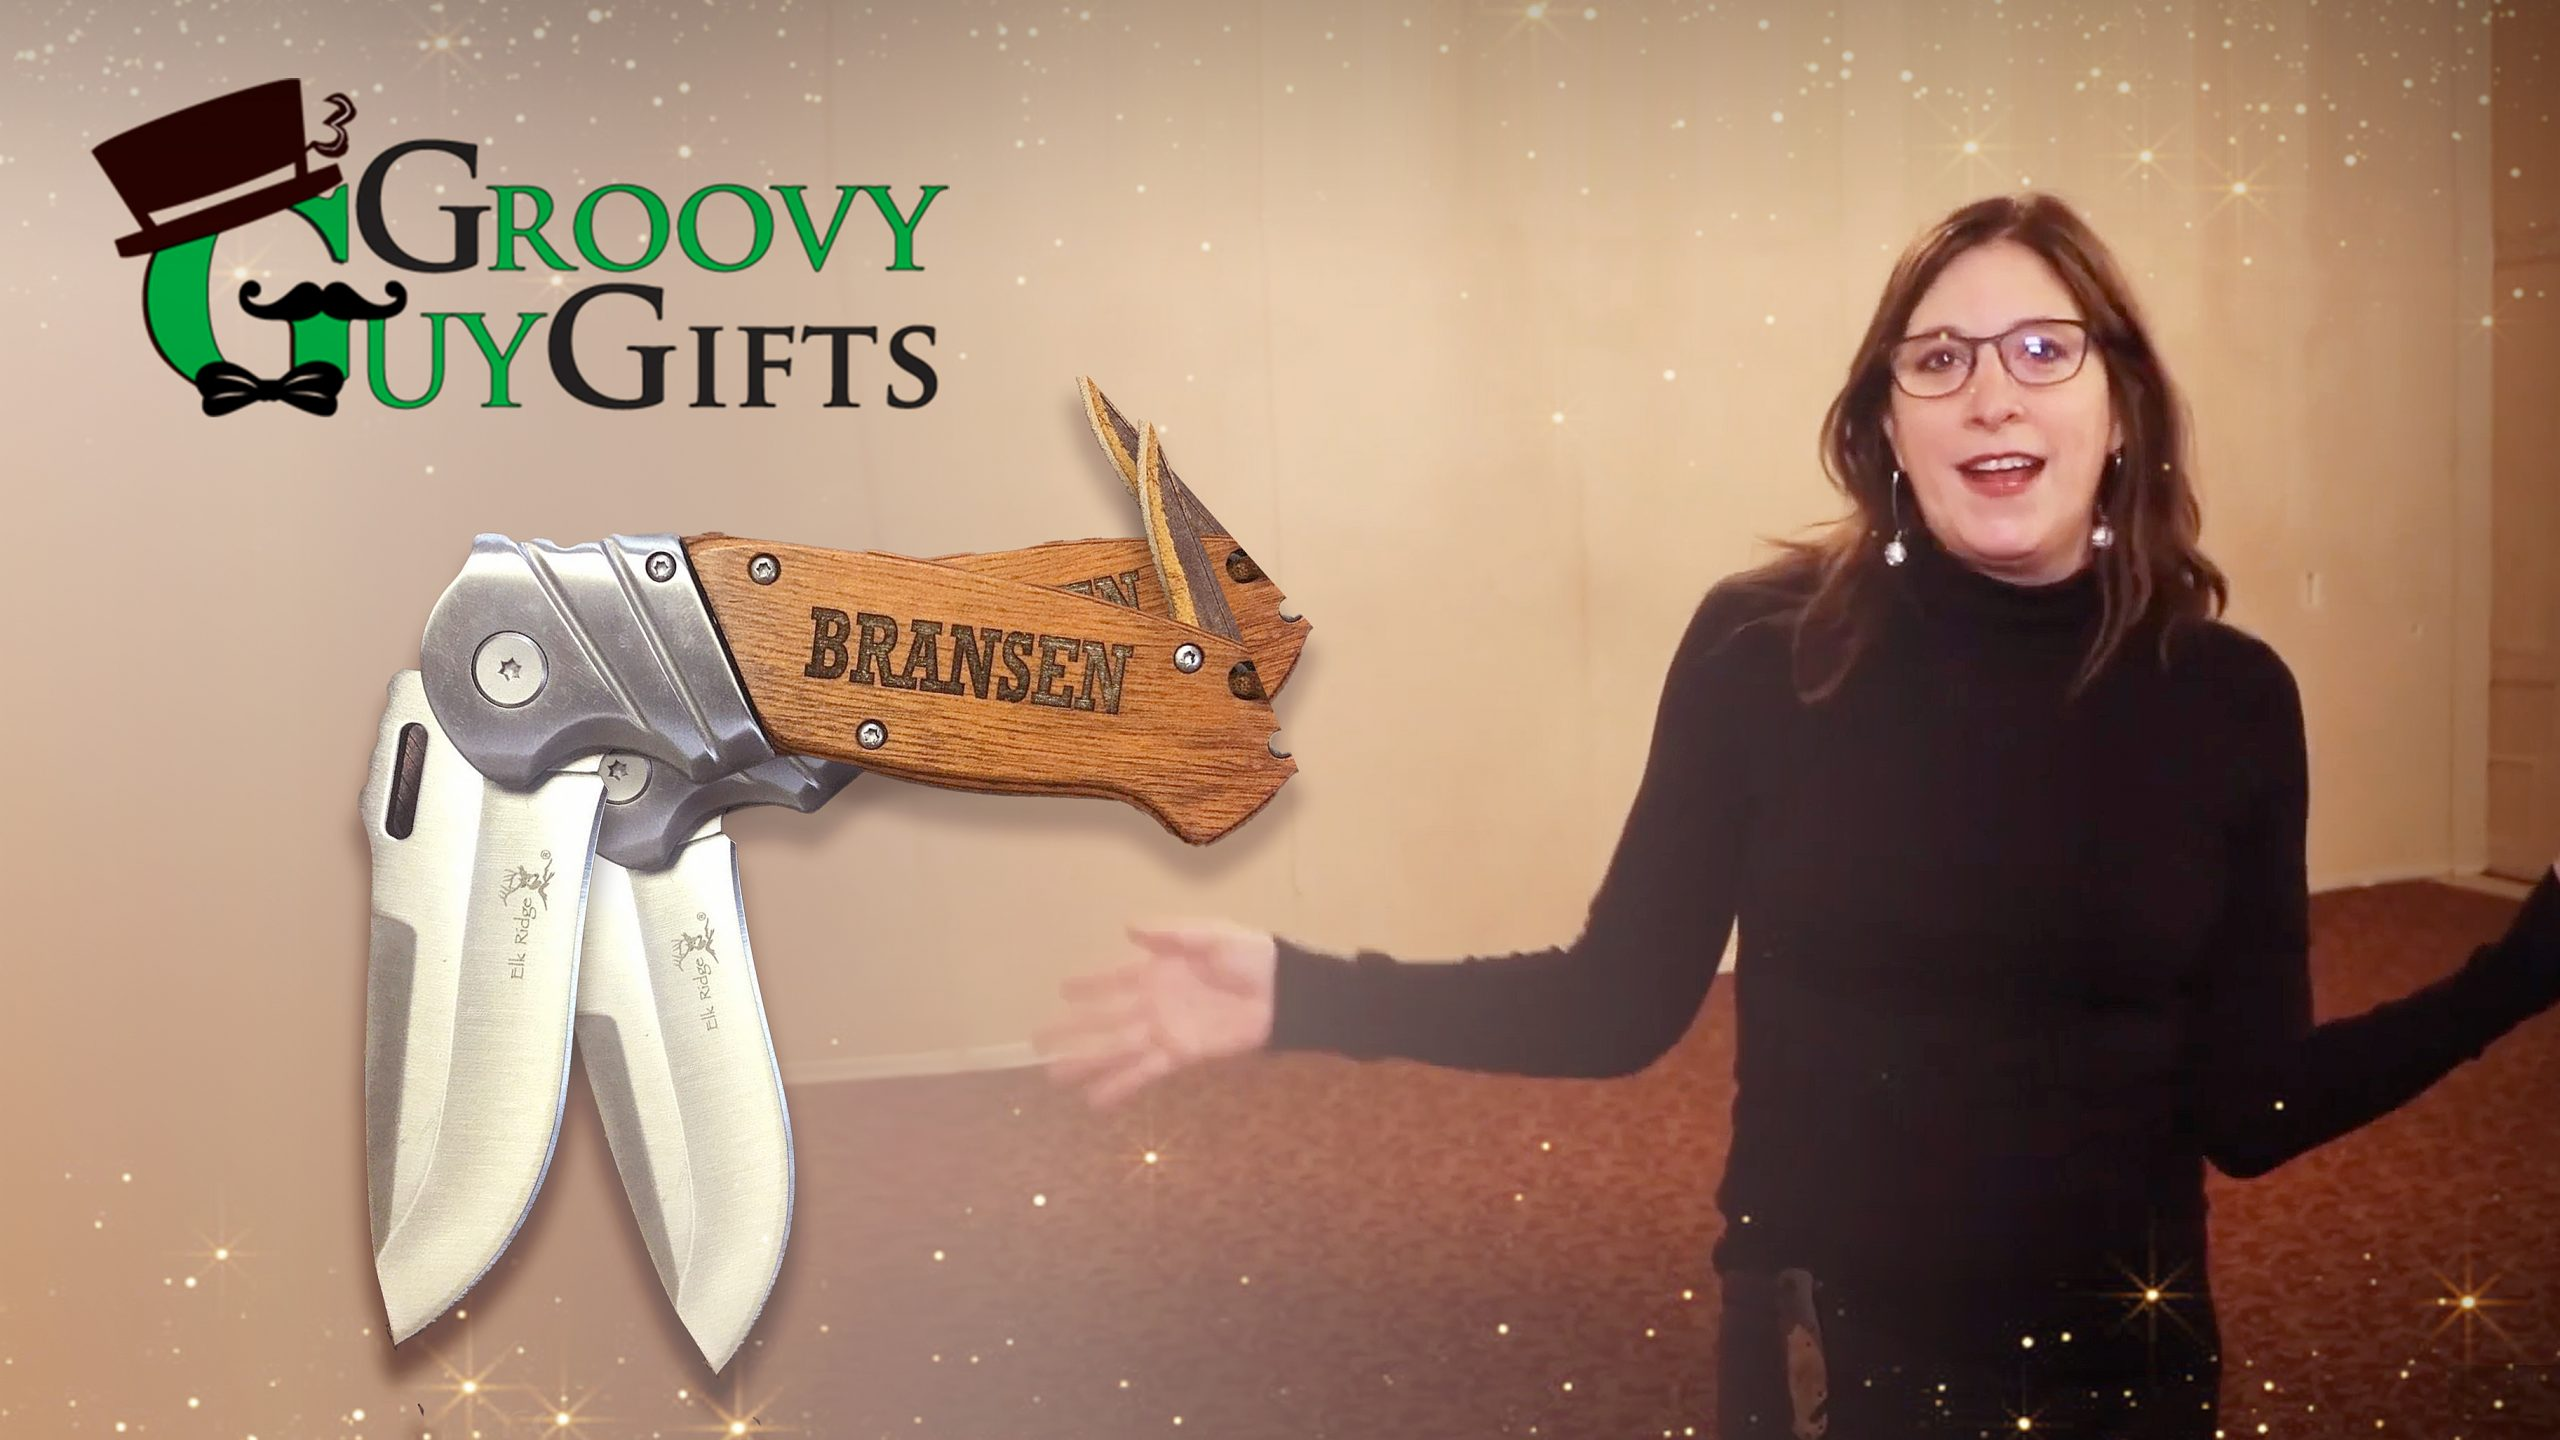 personalized knives from groovy guy gifts